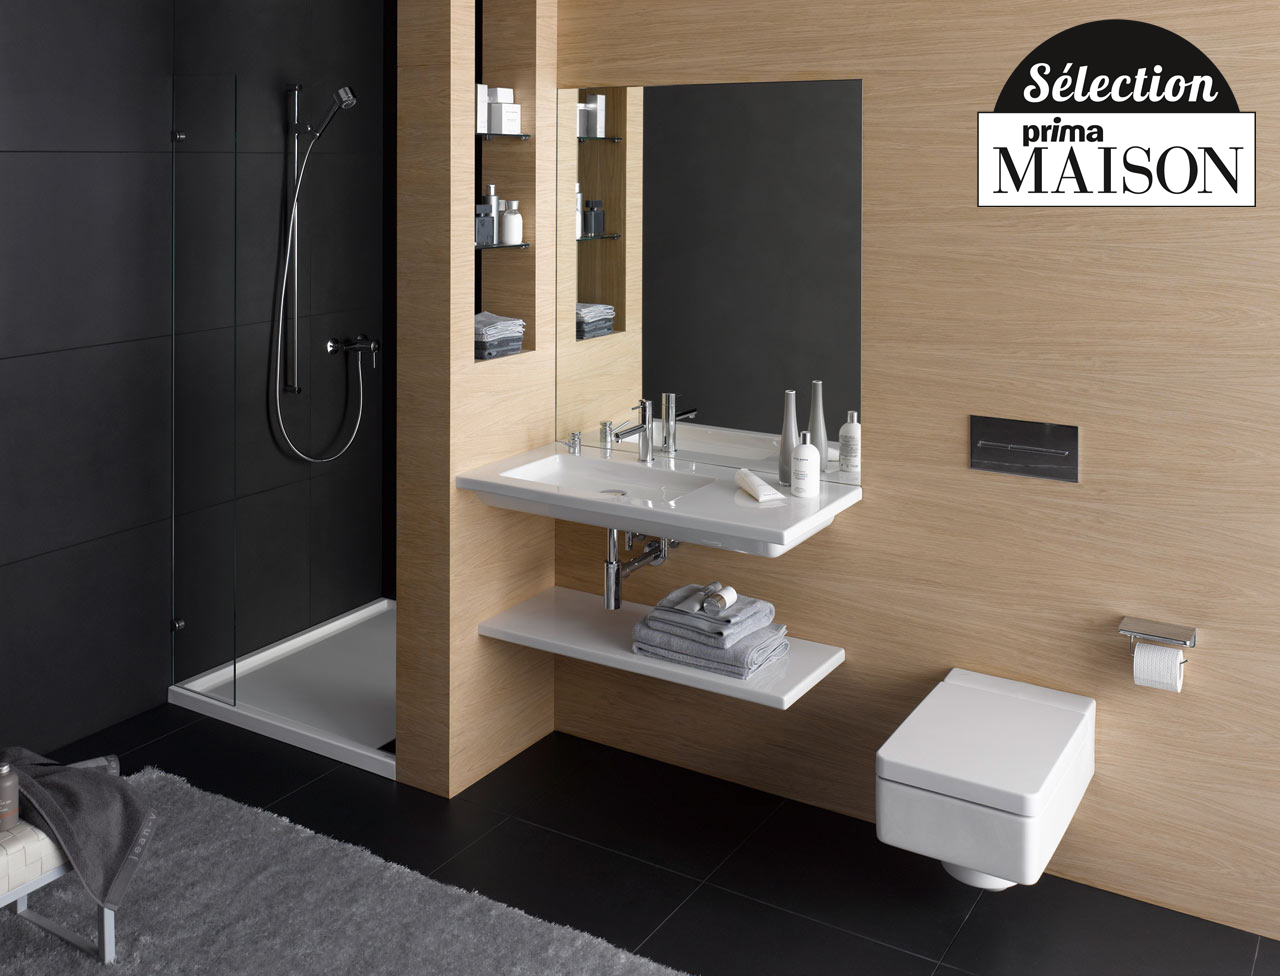 D coration salle de bain 2016 exemples d 39 am nagements for La decoration de salle de bain